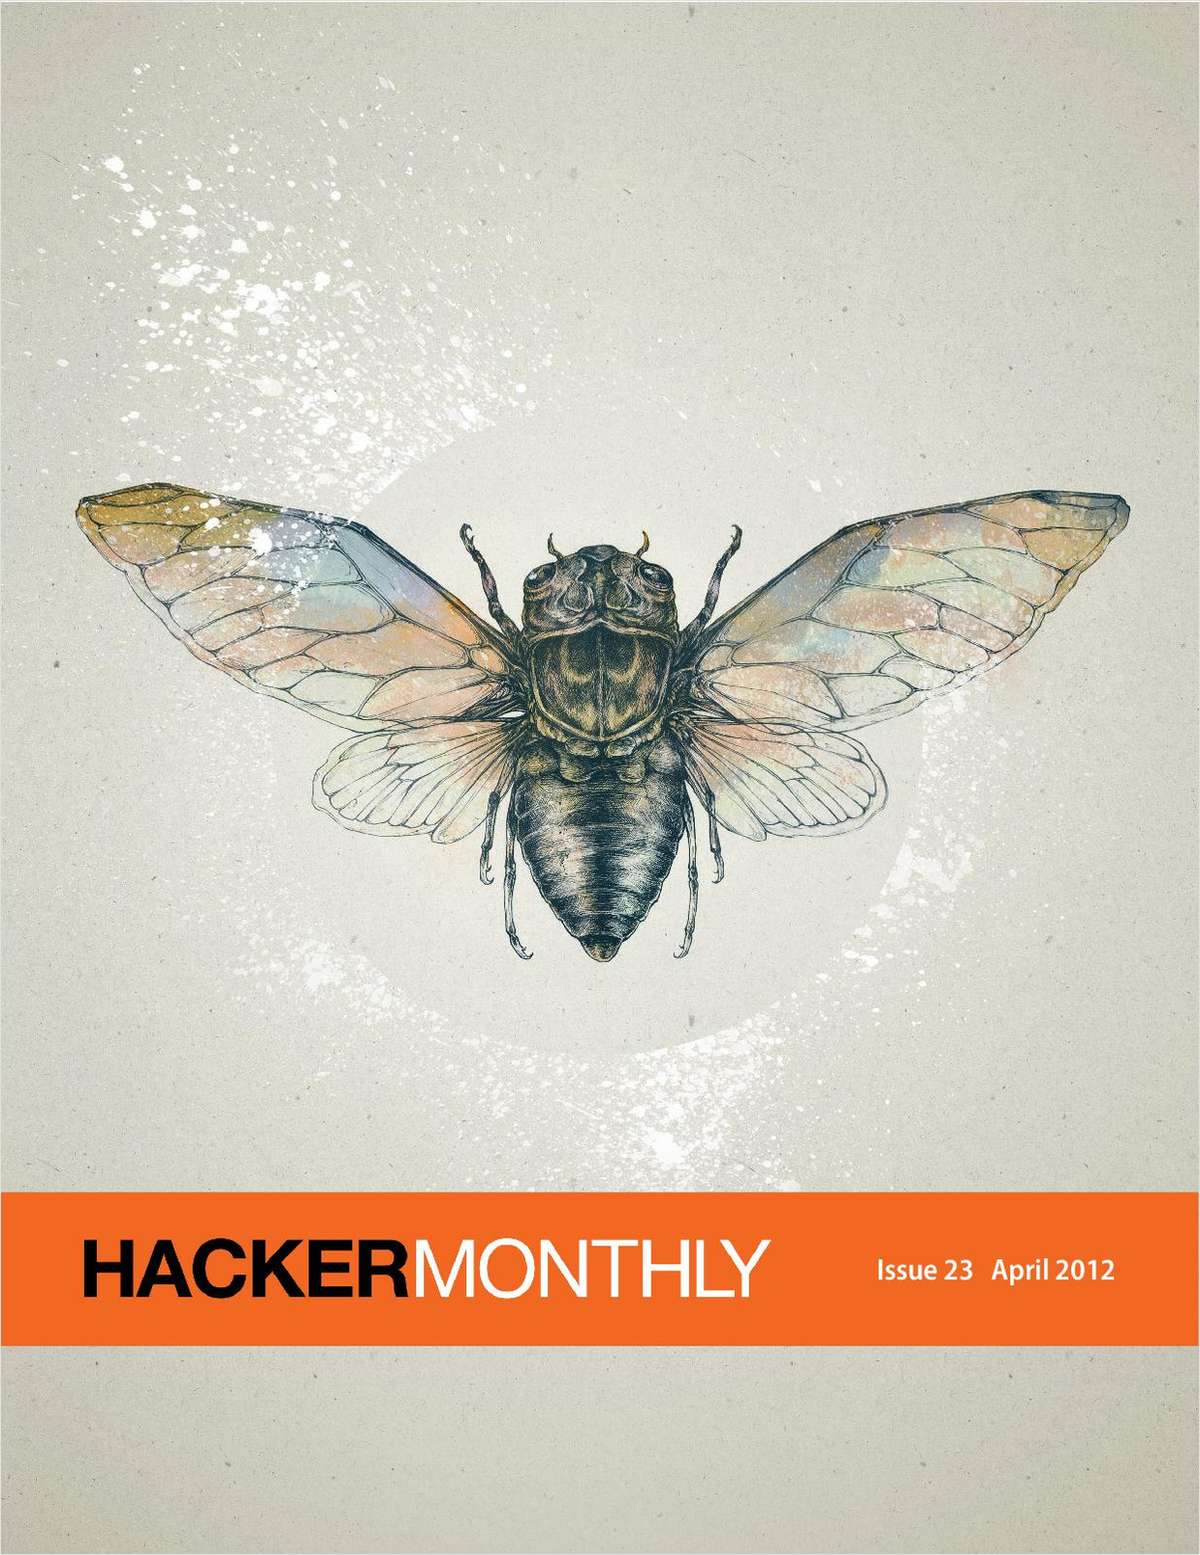 Hacker Monthly -- The Cicada Principle